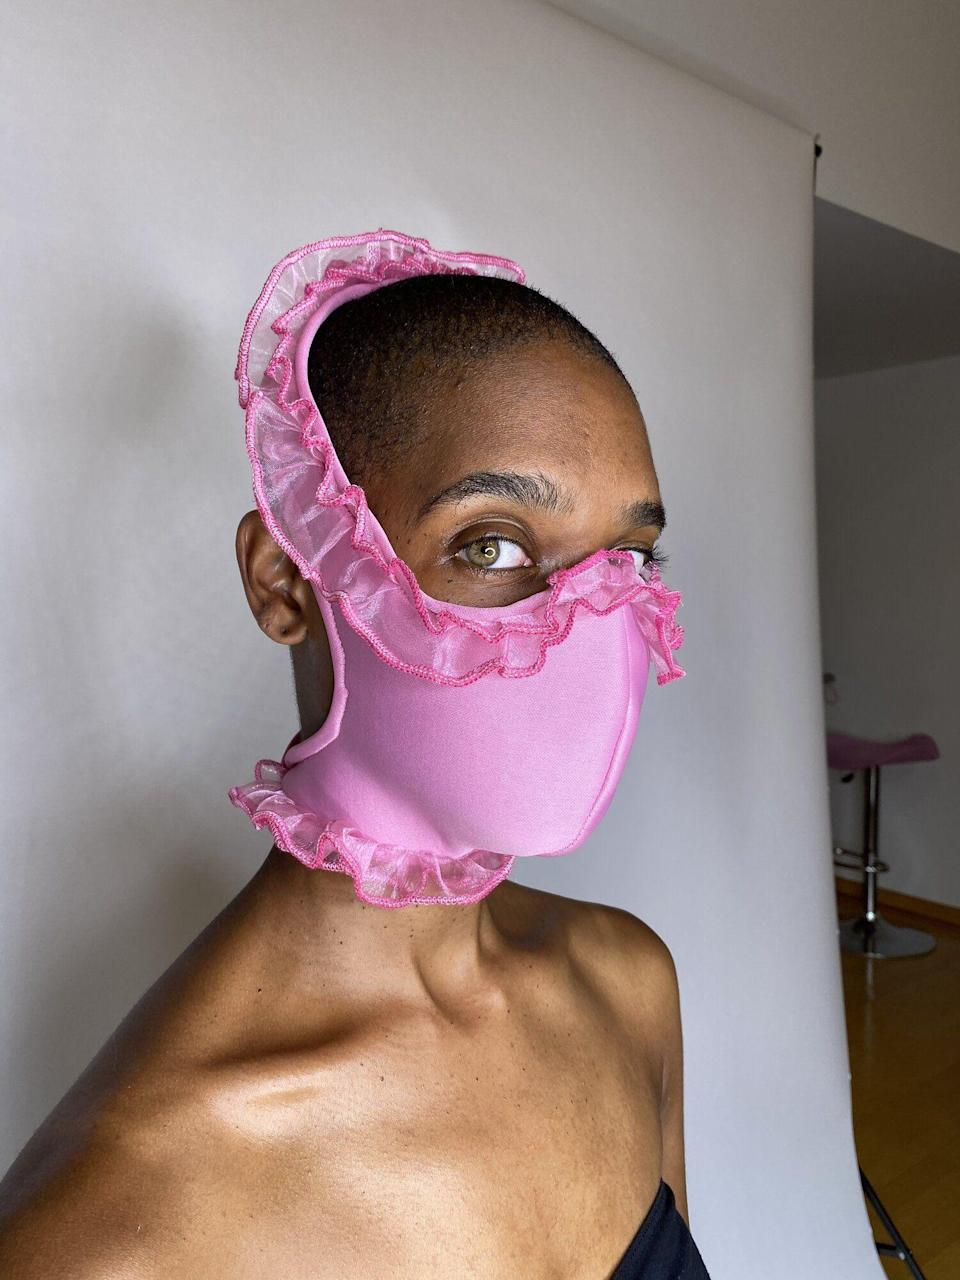 "<p><strong>Tia Adeola</strong></p><p>slashedbytia.net</p><p><strong>$45.00</strong></p><p><a href=""https://www.slashedbytia.net/shop/pink-ruffle-face-mask"" rel=""nofollow noopener"" target=""_blank"" data-ylk=""slk:Shop Now"" class=""link rapid-noclick-resp"">Shop Now</a></p><p>This mask doesn't have an explicit royal connection per se, but it is guaranteed to make you feel like a princess. </p>"